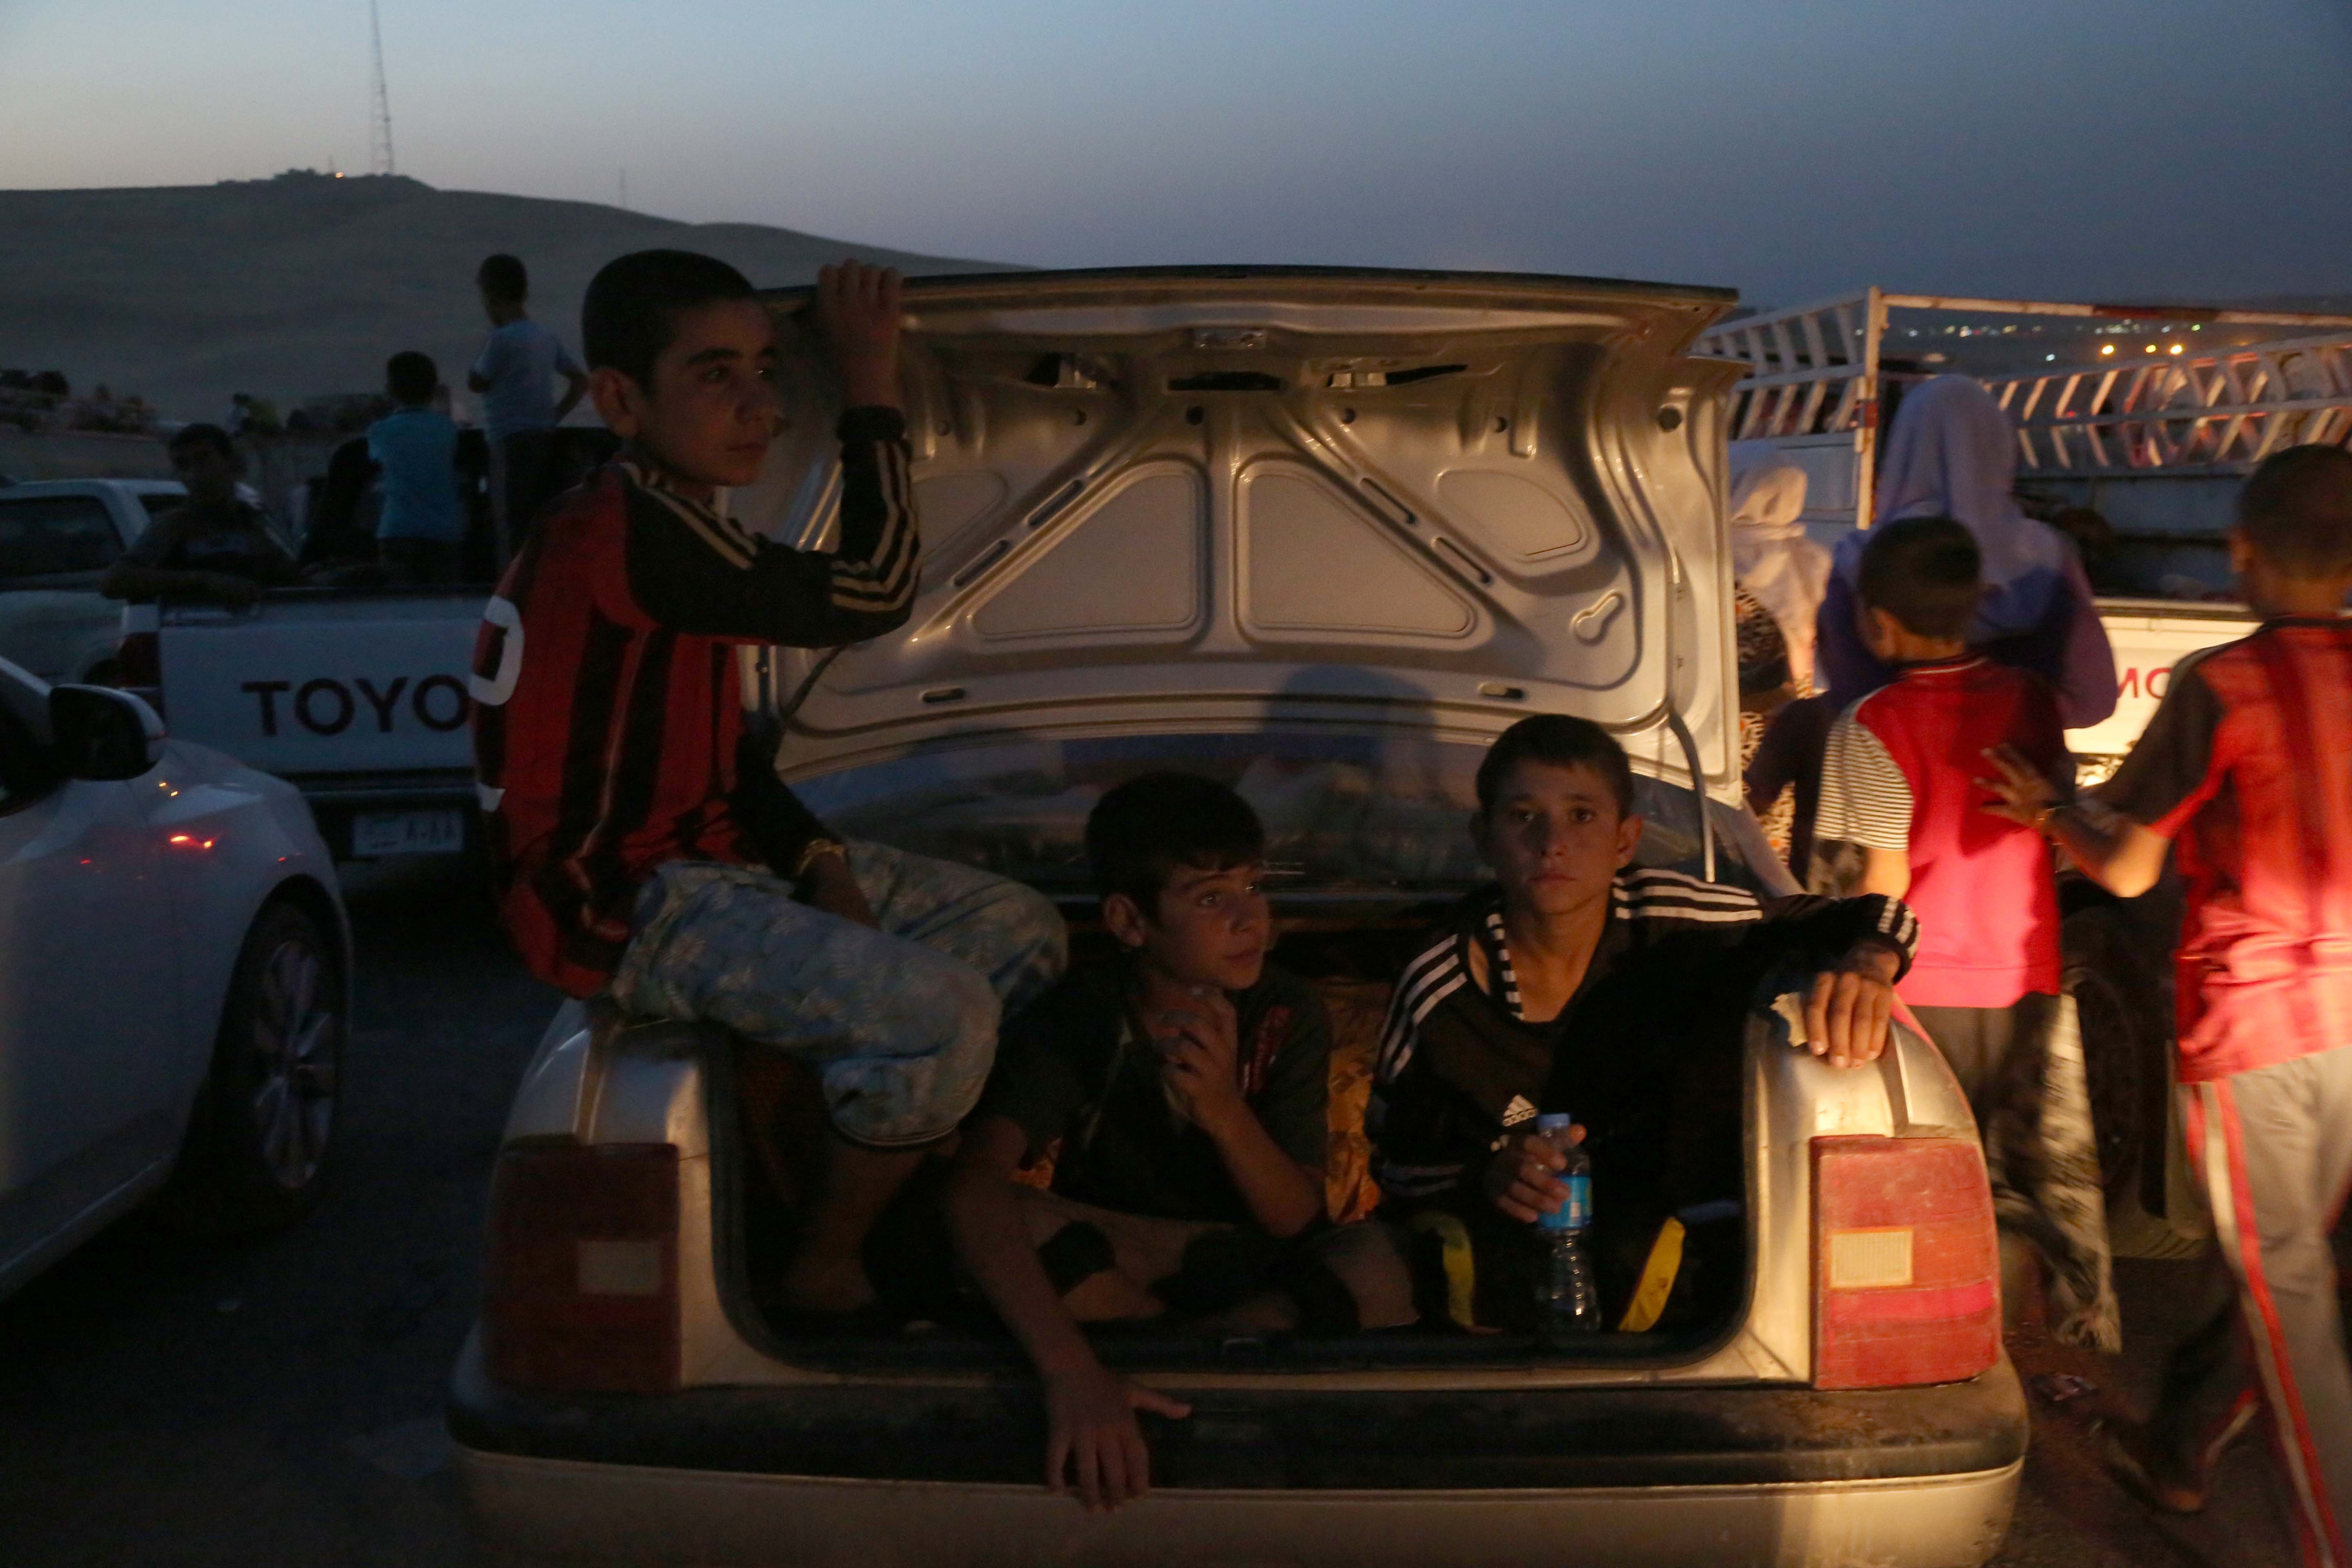 Thousands of Iraqis flee from the town of Sinjar, near the city of Mosul, to Erbil and Dohuk after armed groups affiliated with the Islamic State seized the town early on August 4, 2014.